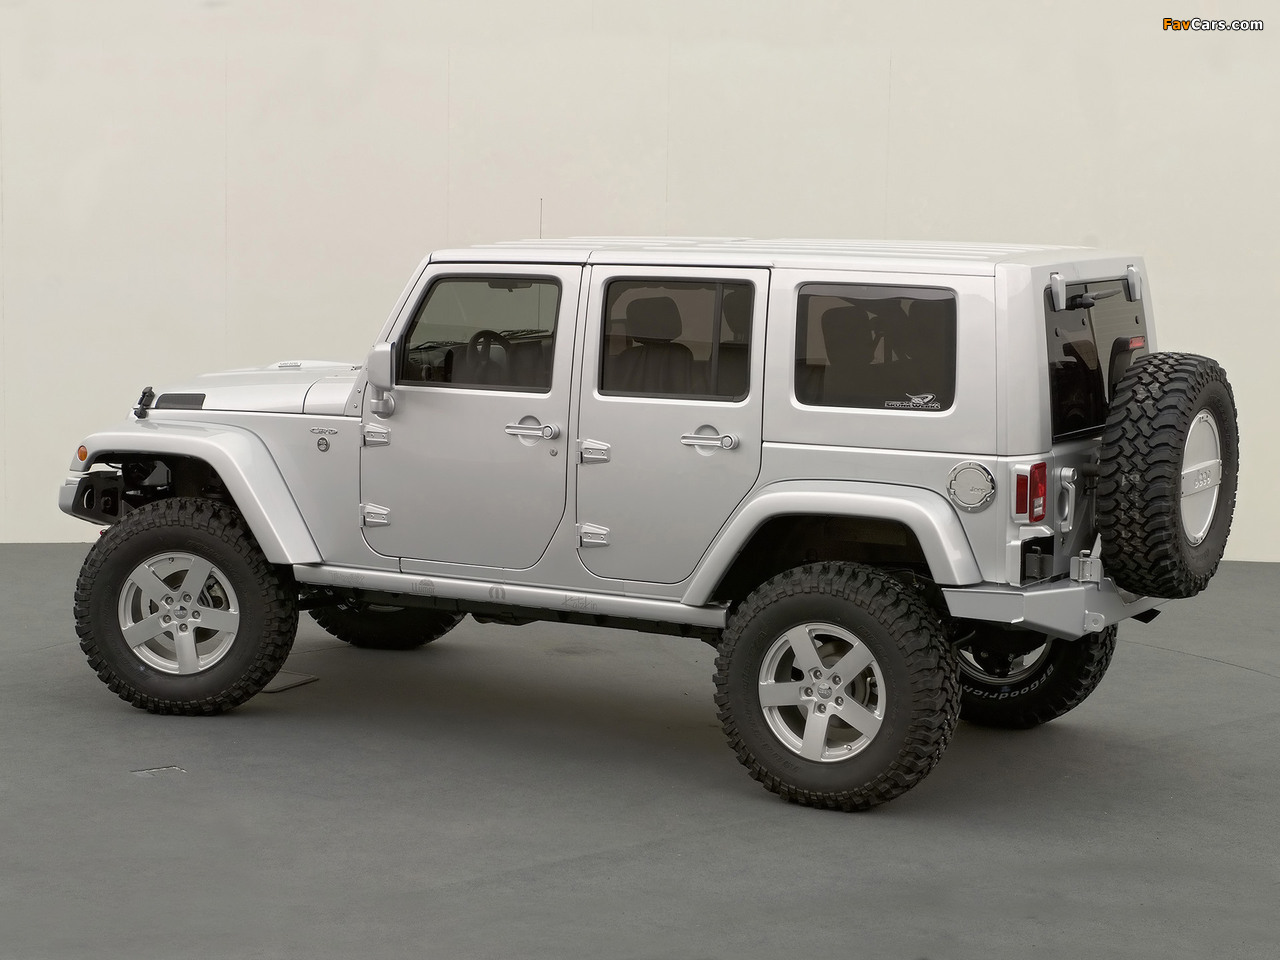 Jeep Wrangler Unlimited Rubicon Concept (JK) 2006 wallpapers (1280 x 960)